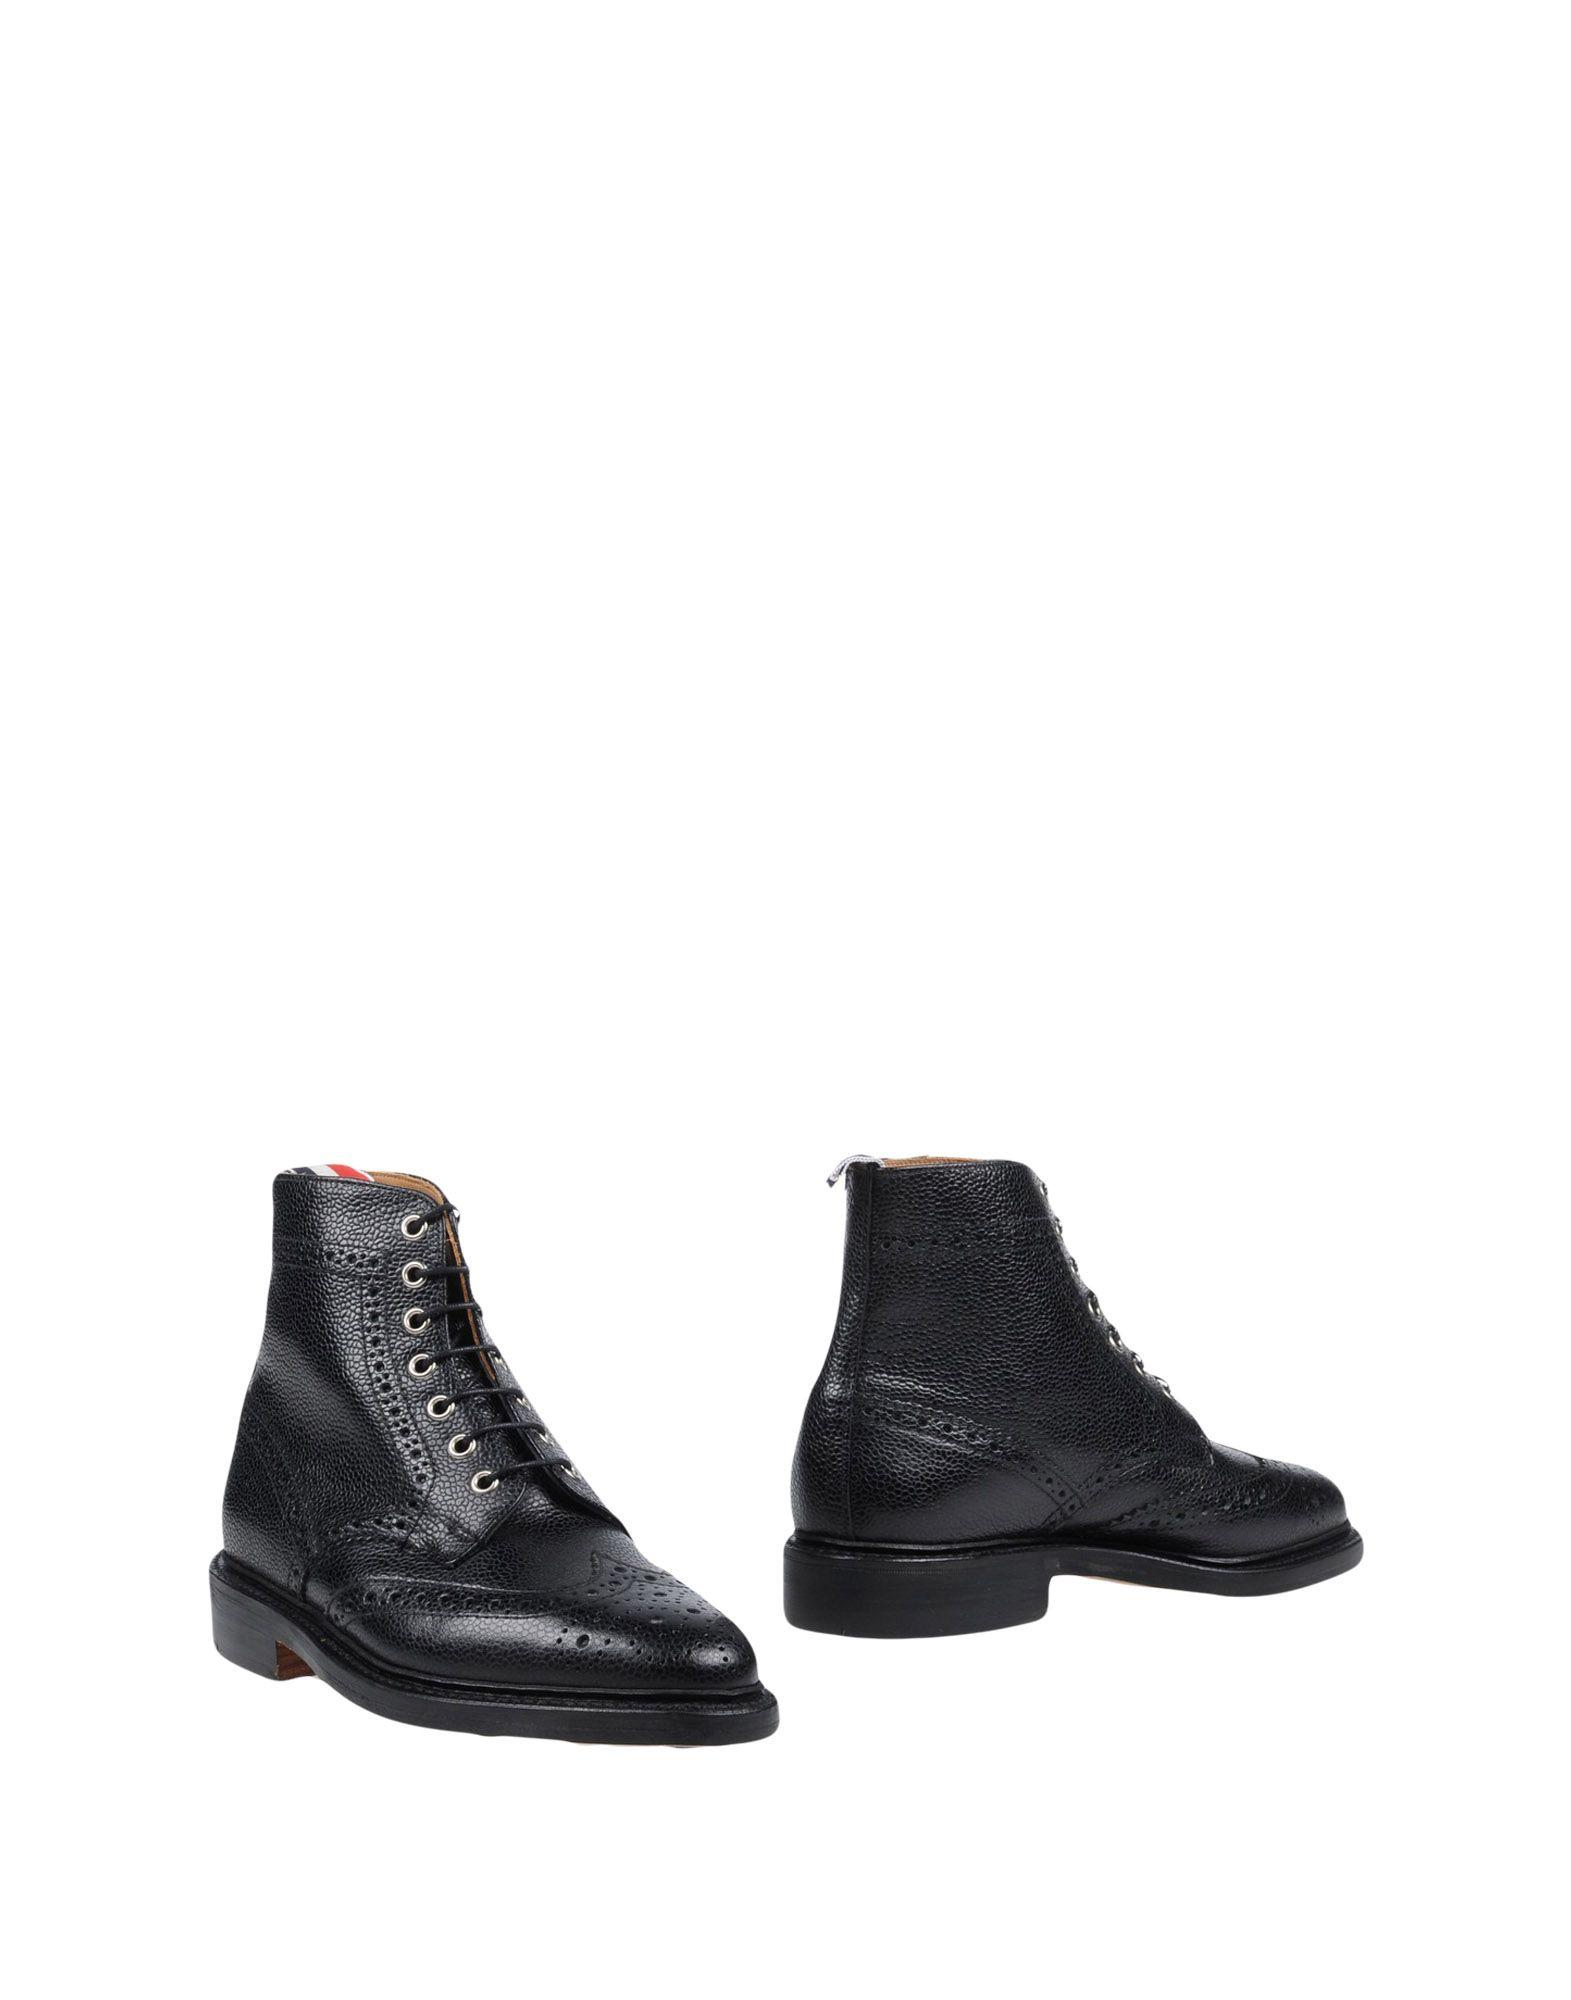 Thom Browne Boots In Black